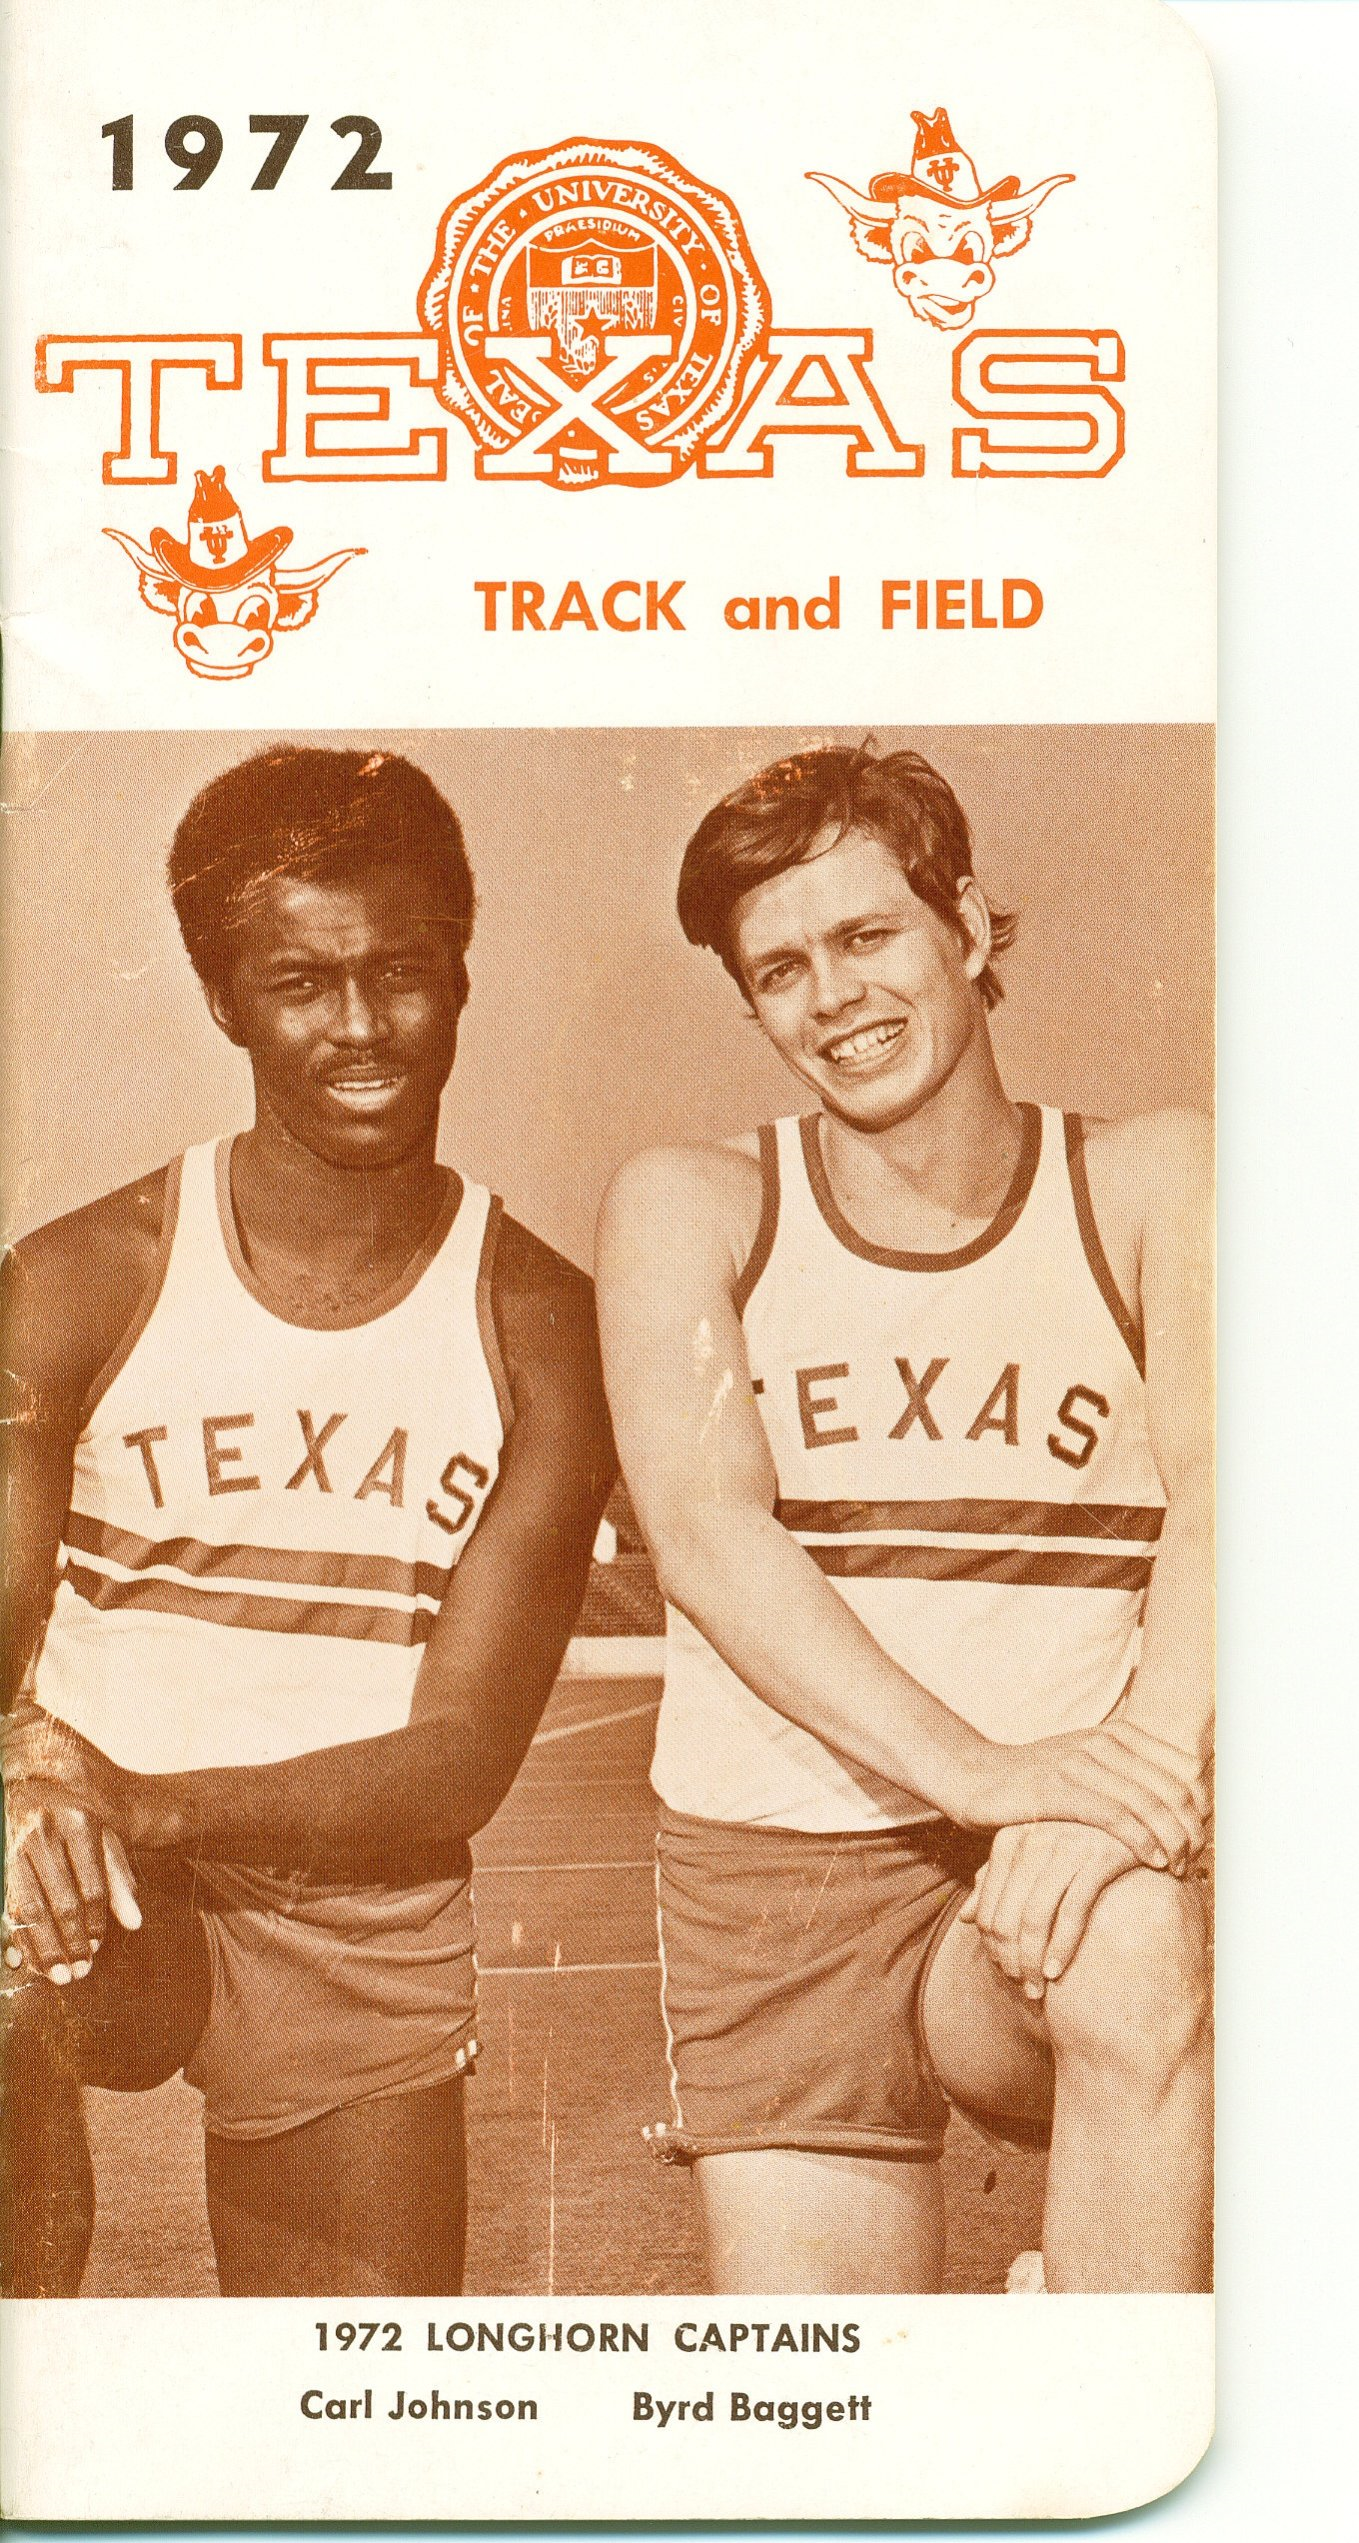 1972 track.png